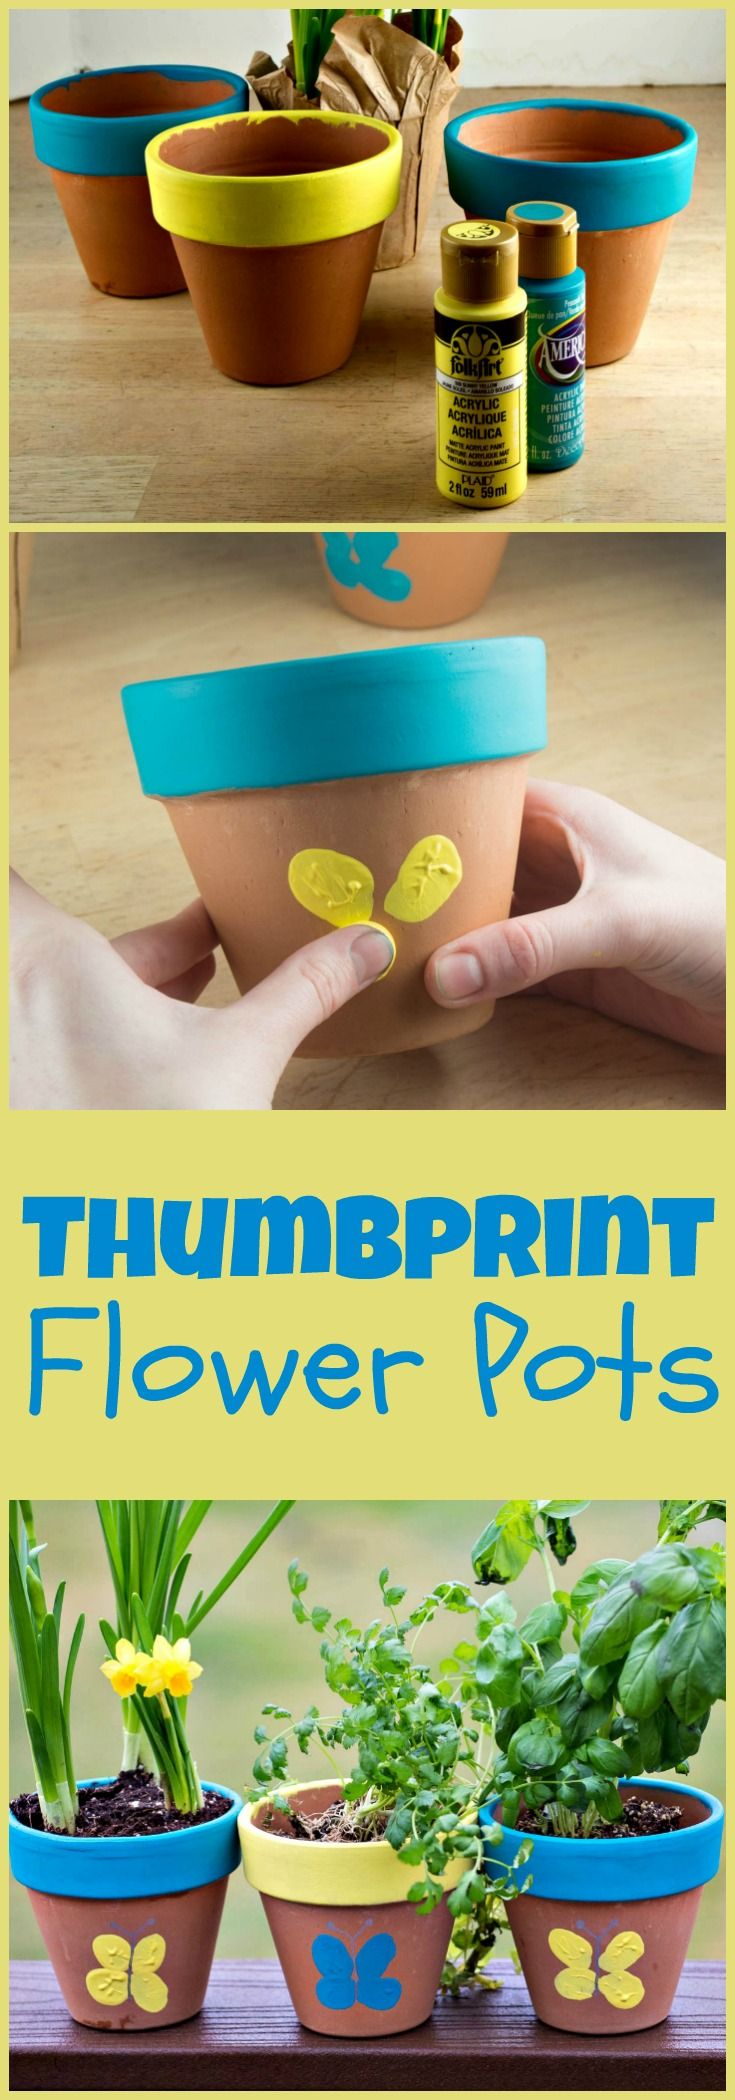 Thumbprint Flower Pot #flowerpot